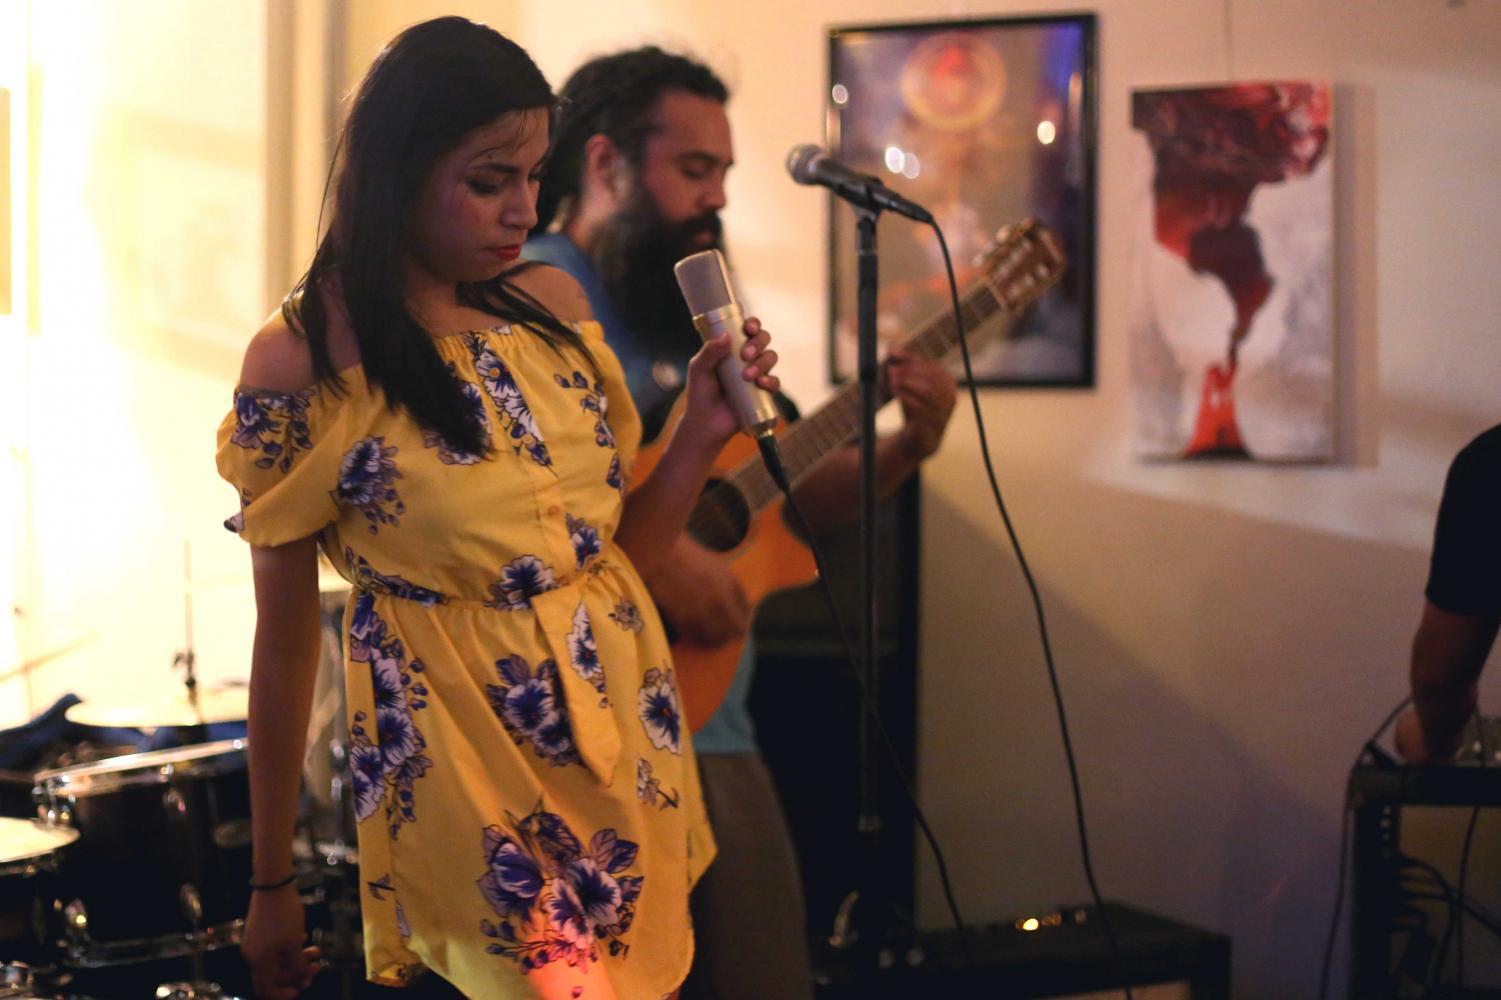 Helen+Vargas+sings+with+her+band+Dulce+Mal+at+day+two+of+Locals+Week+on+Wednesday%2C+June6+at+Craft+and+Social.+